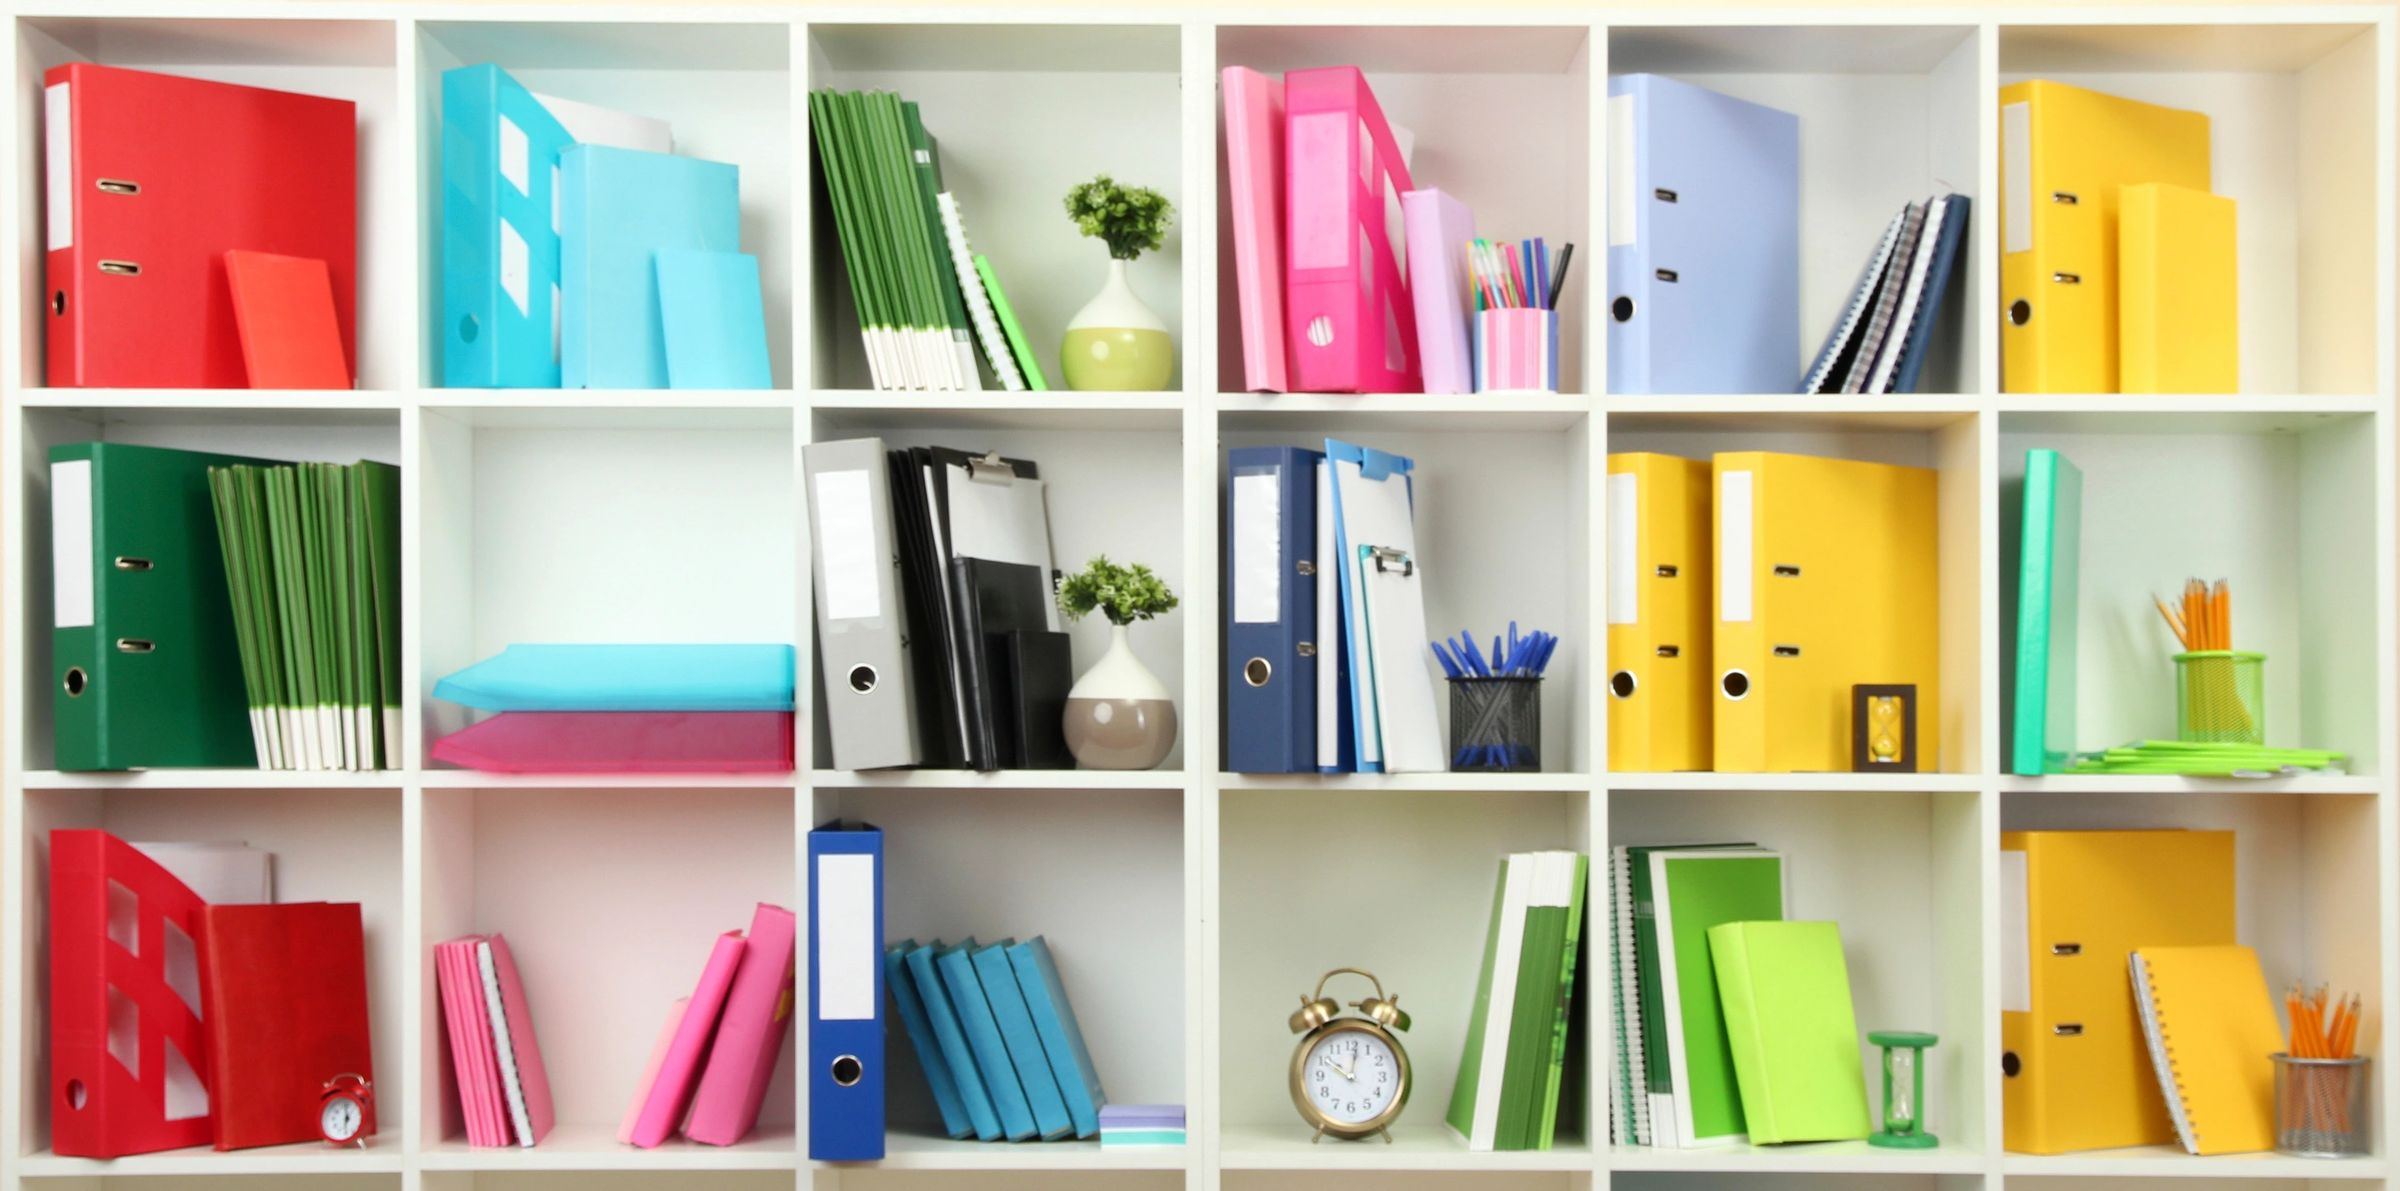 HOW TO BE ORGANIZED IN YOUR HOME AND OFFICE